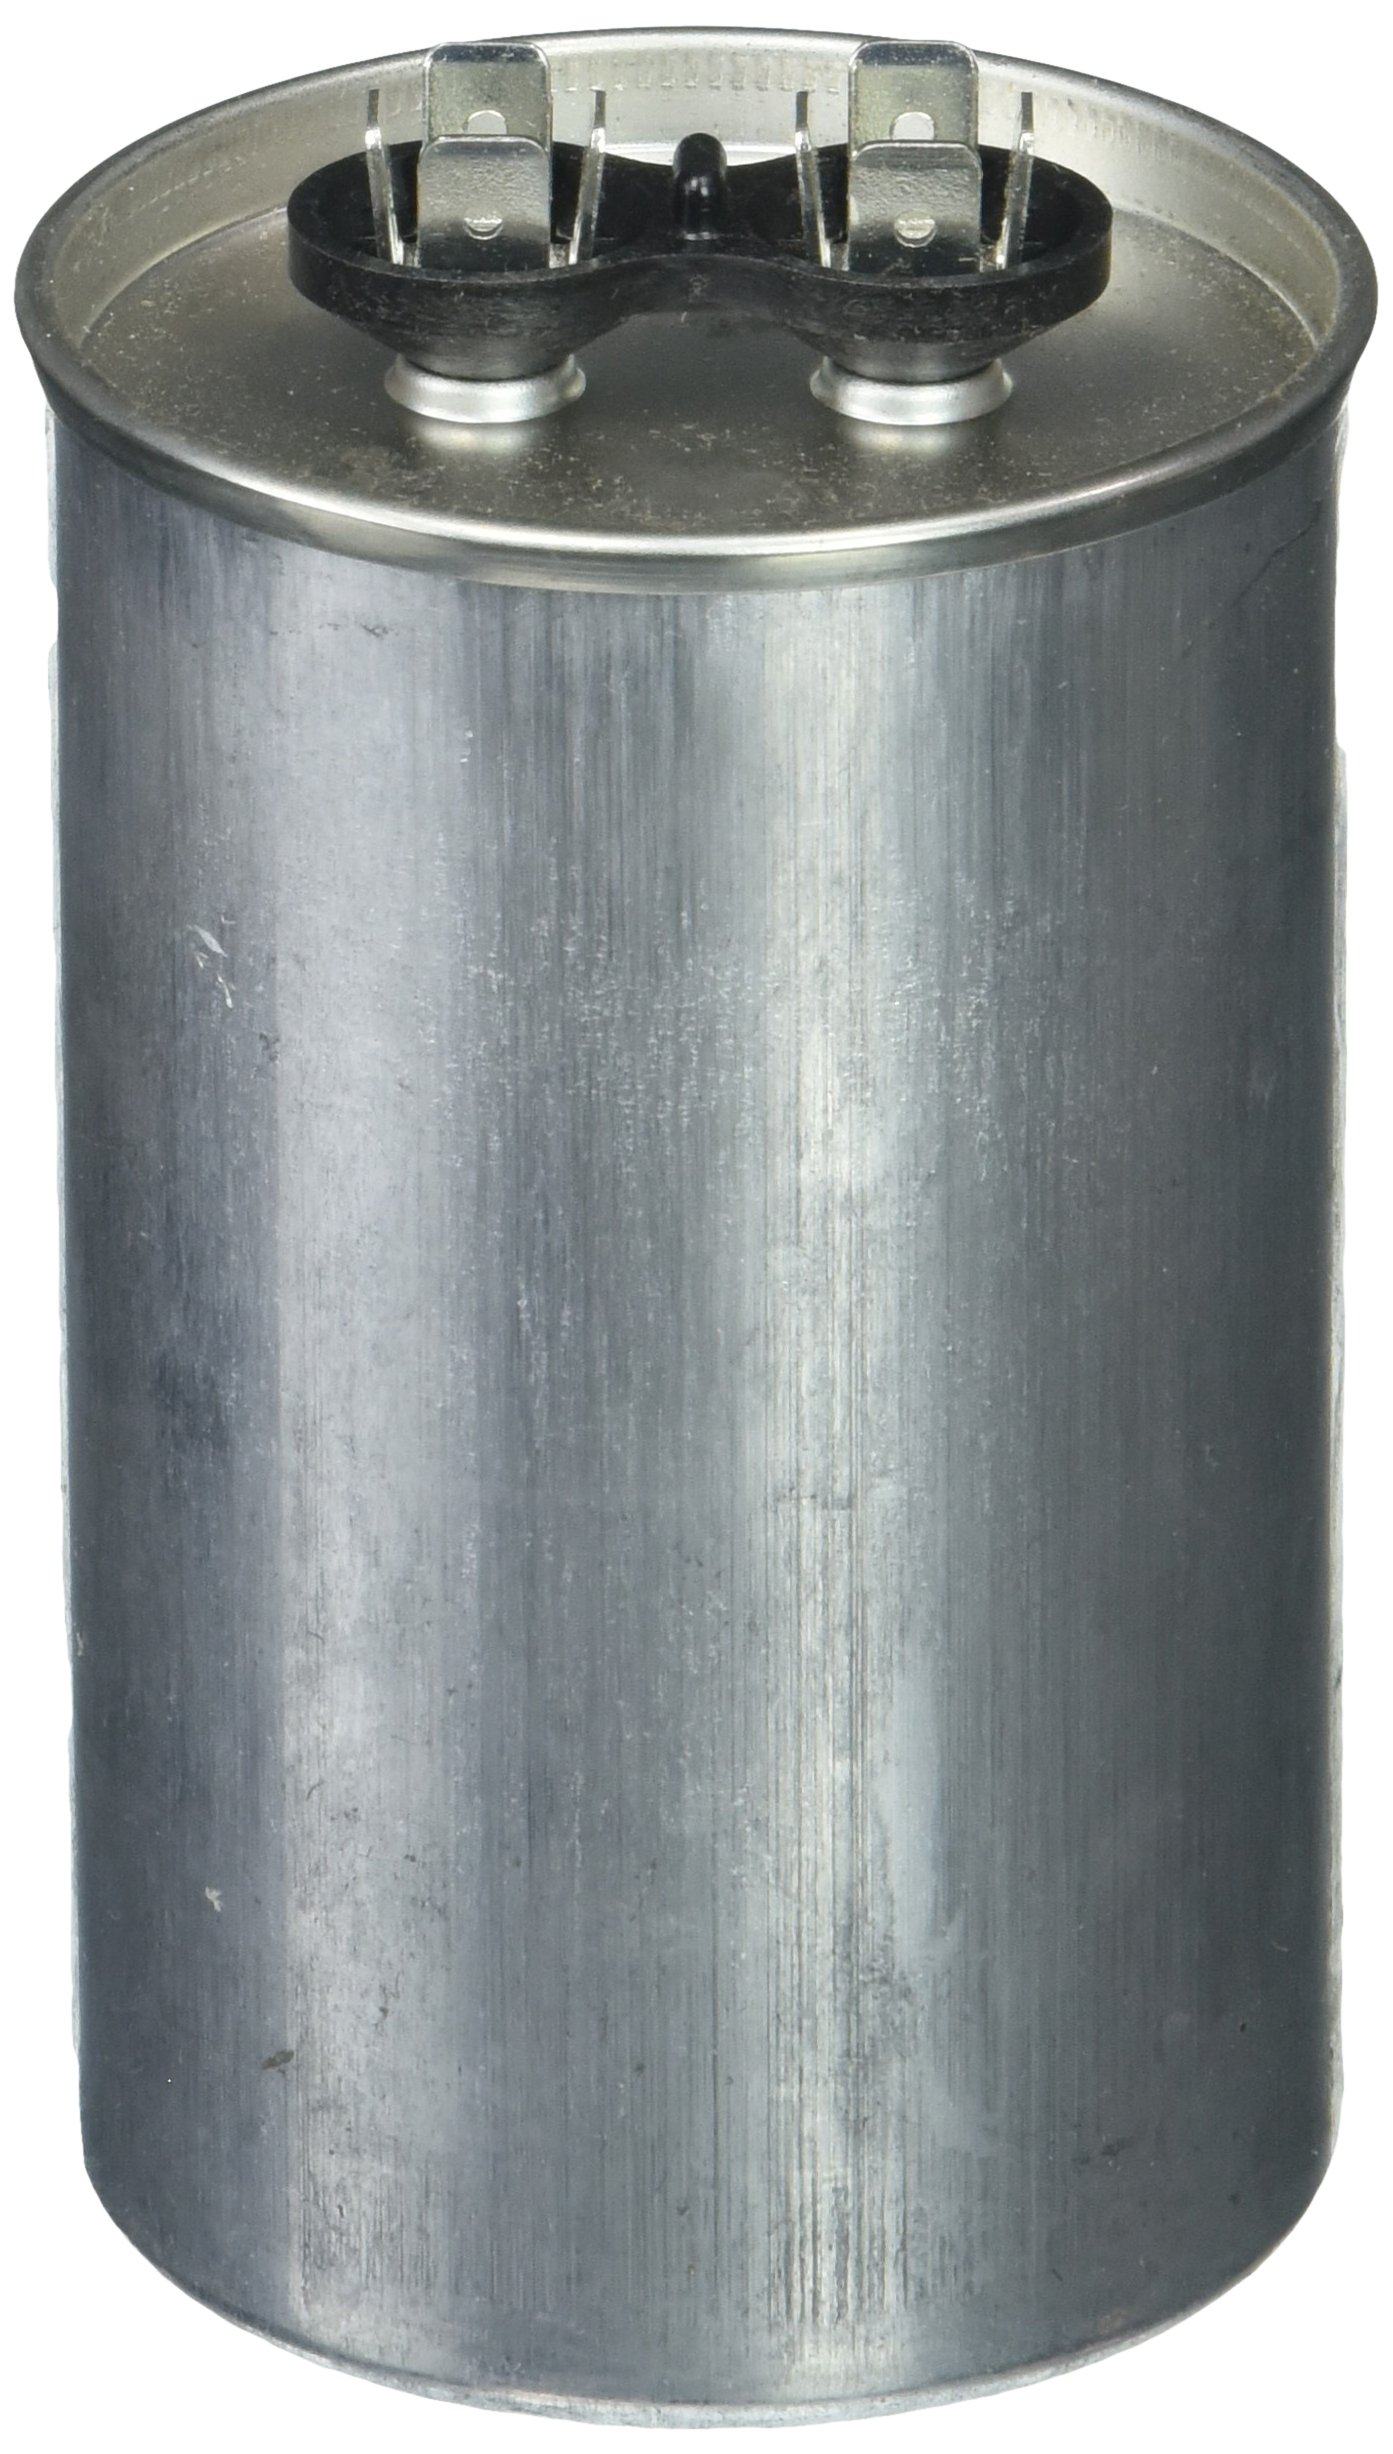 Protech 43-101666-69 70/440 Single Round Capacitor